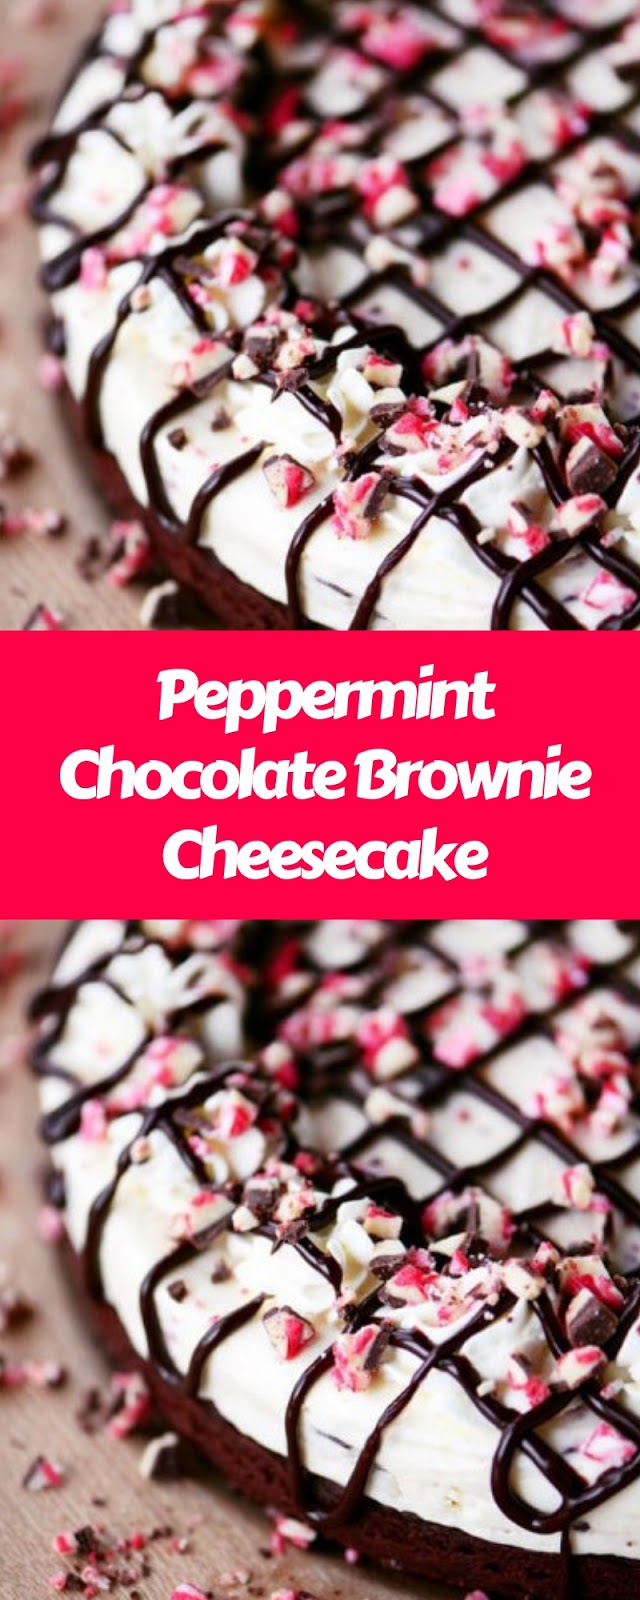 Peppermint Chocolate Brownie Cheesecake